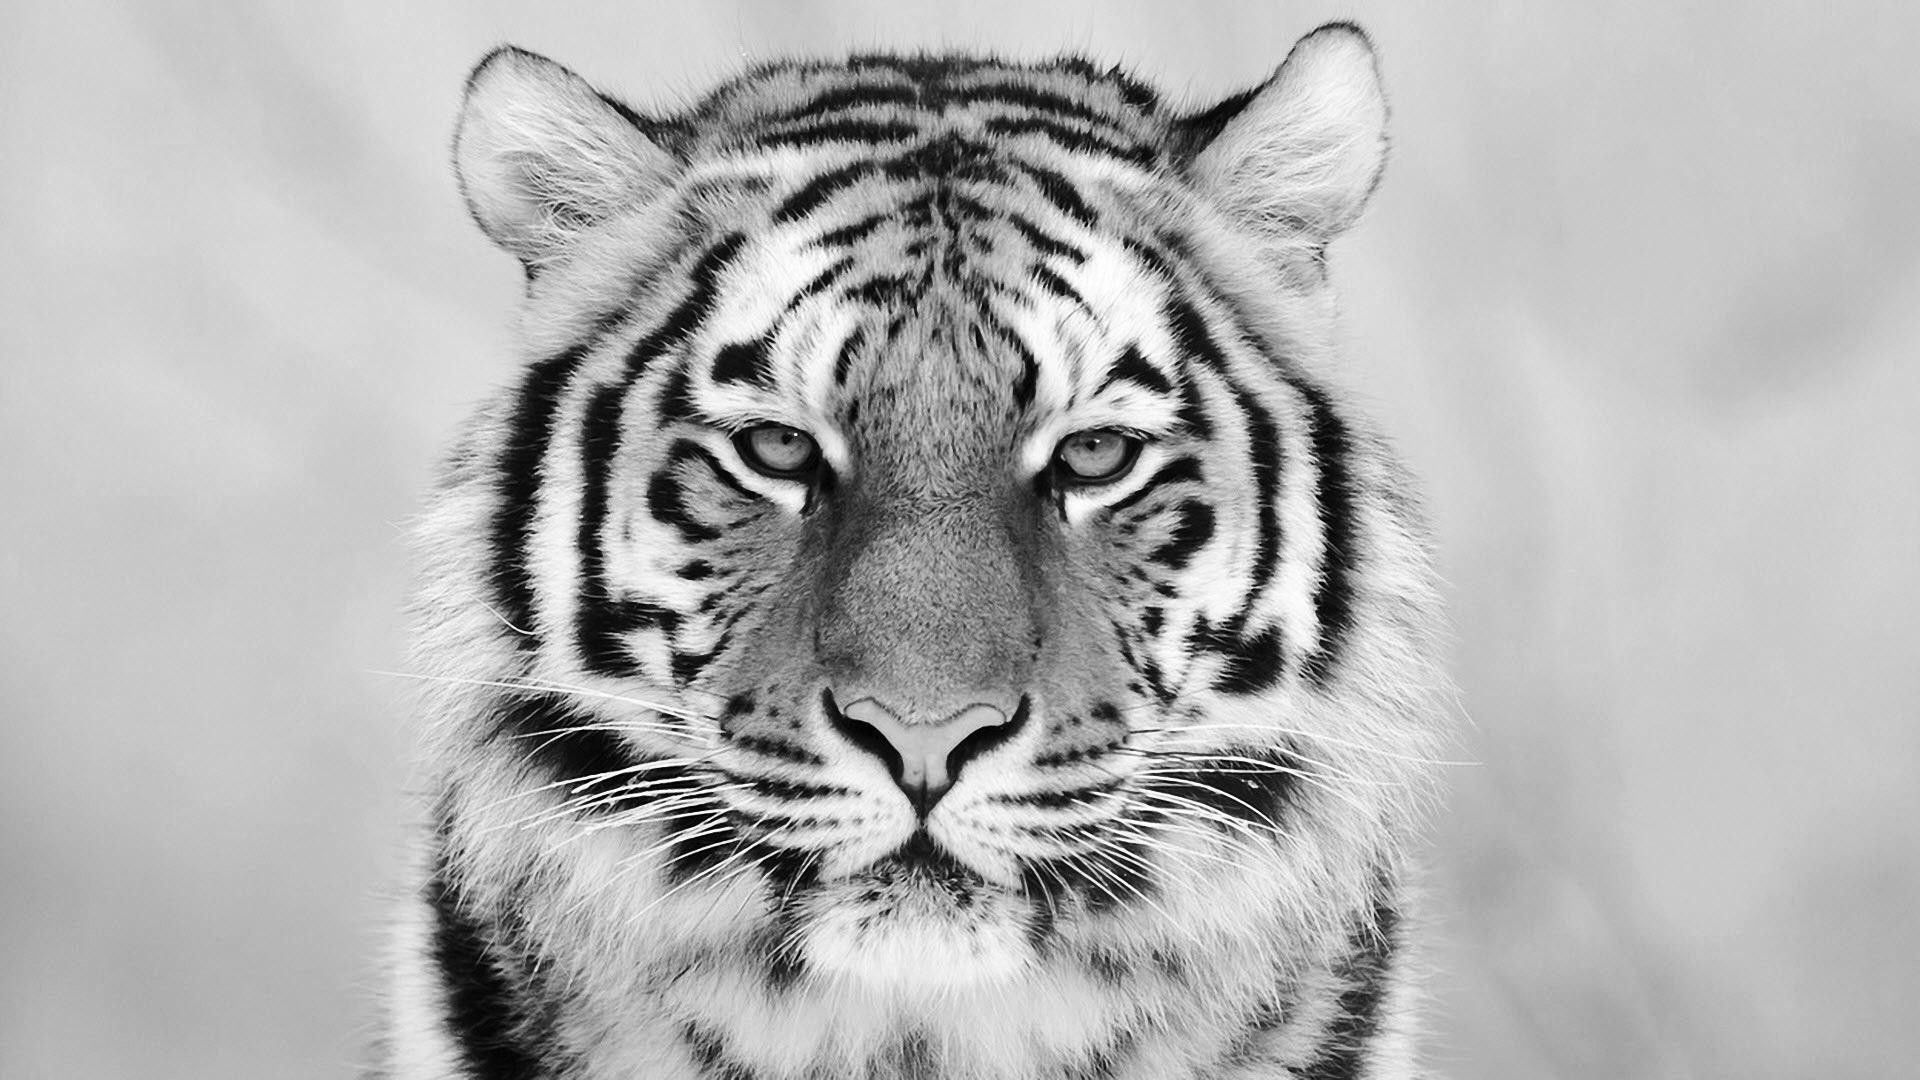 Tiger Black And White Wallpapers Top Free Tiger Black And White Backgrounds Wallpaperaccess